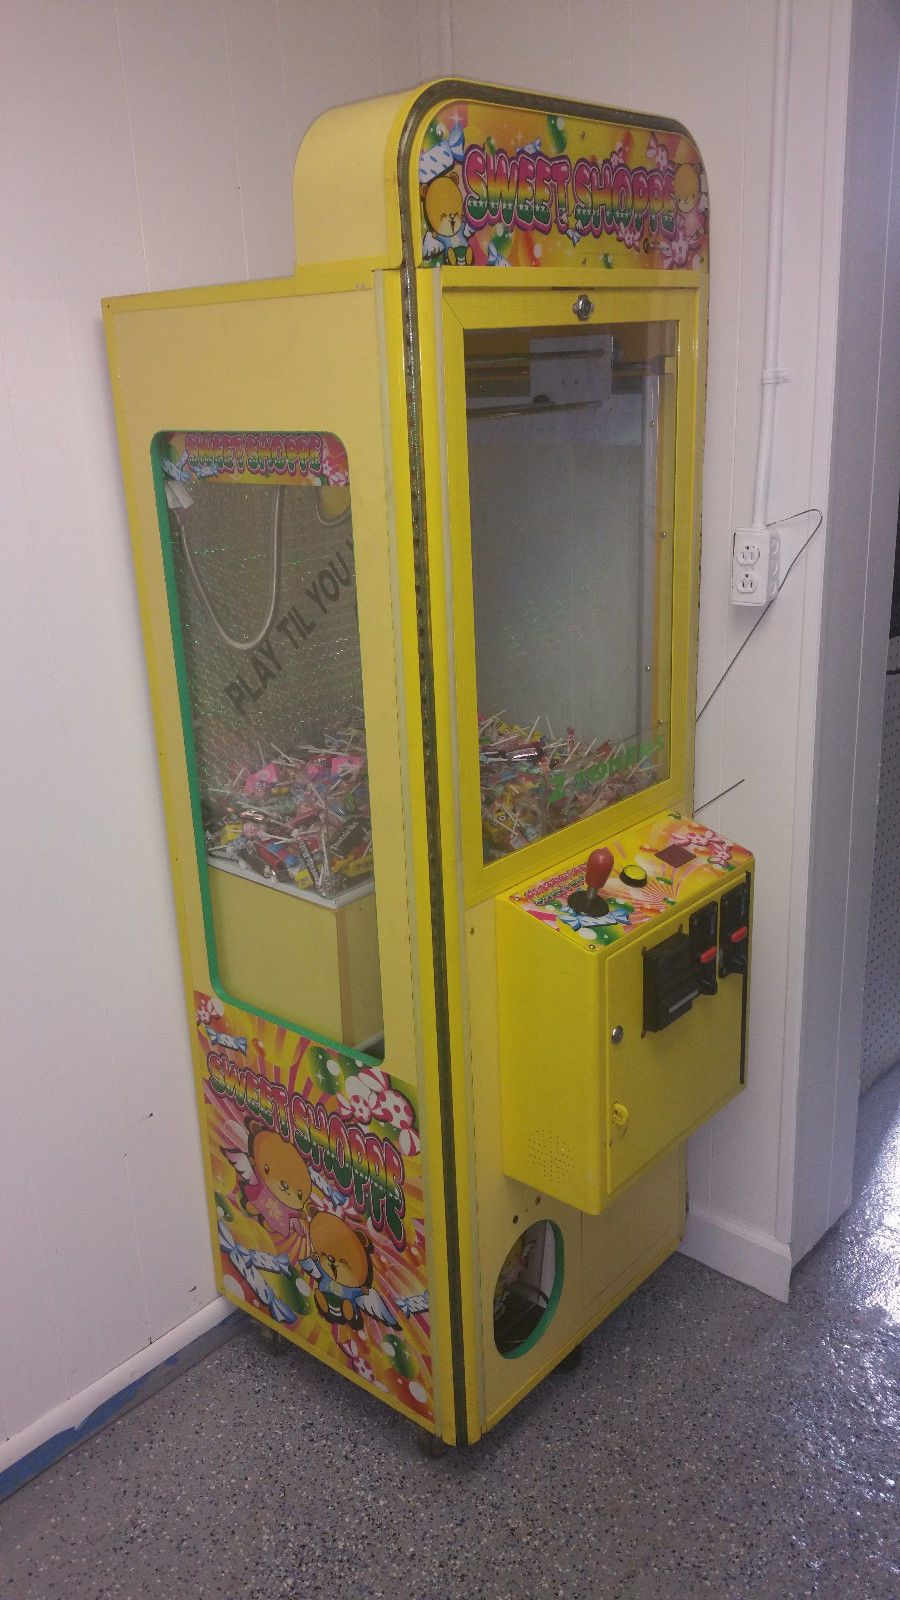 Sweet Shoppe Candy Crane Claw Machine Coin Op Free Play